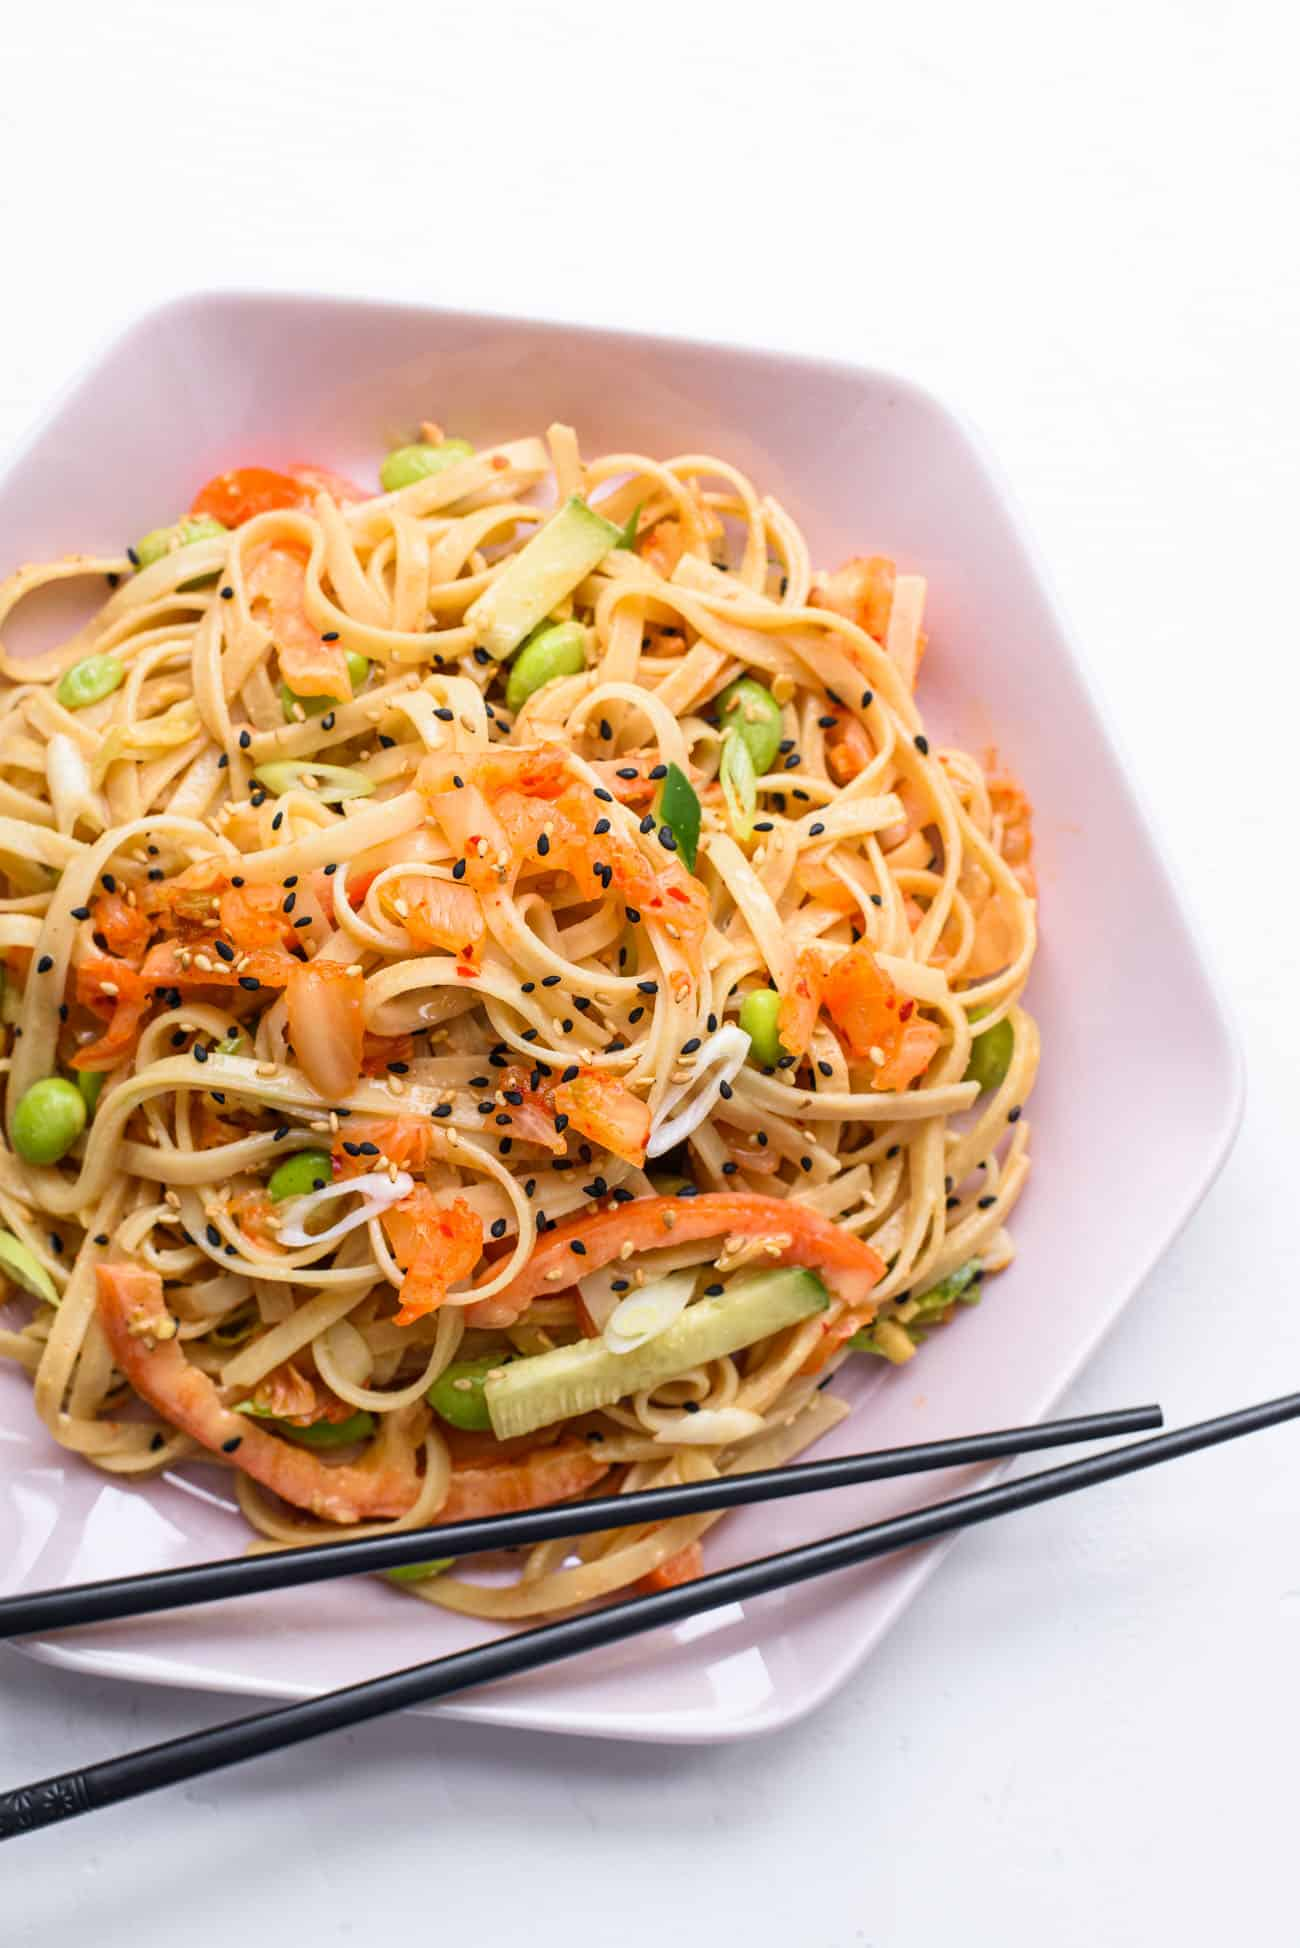 Cold peanut noodle salad with kimchi on a pink hexagonal plate with black chopsticks